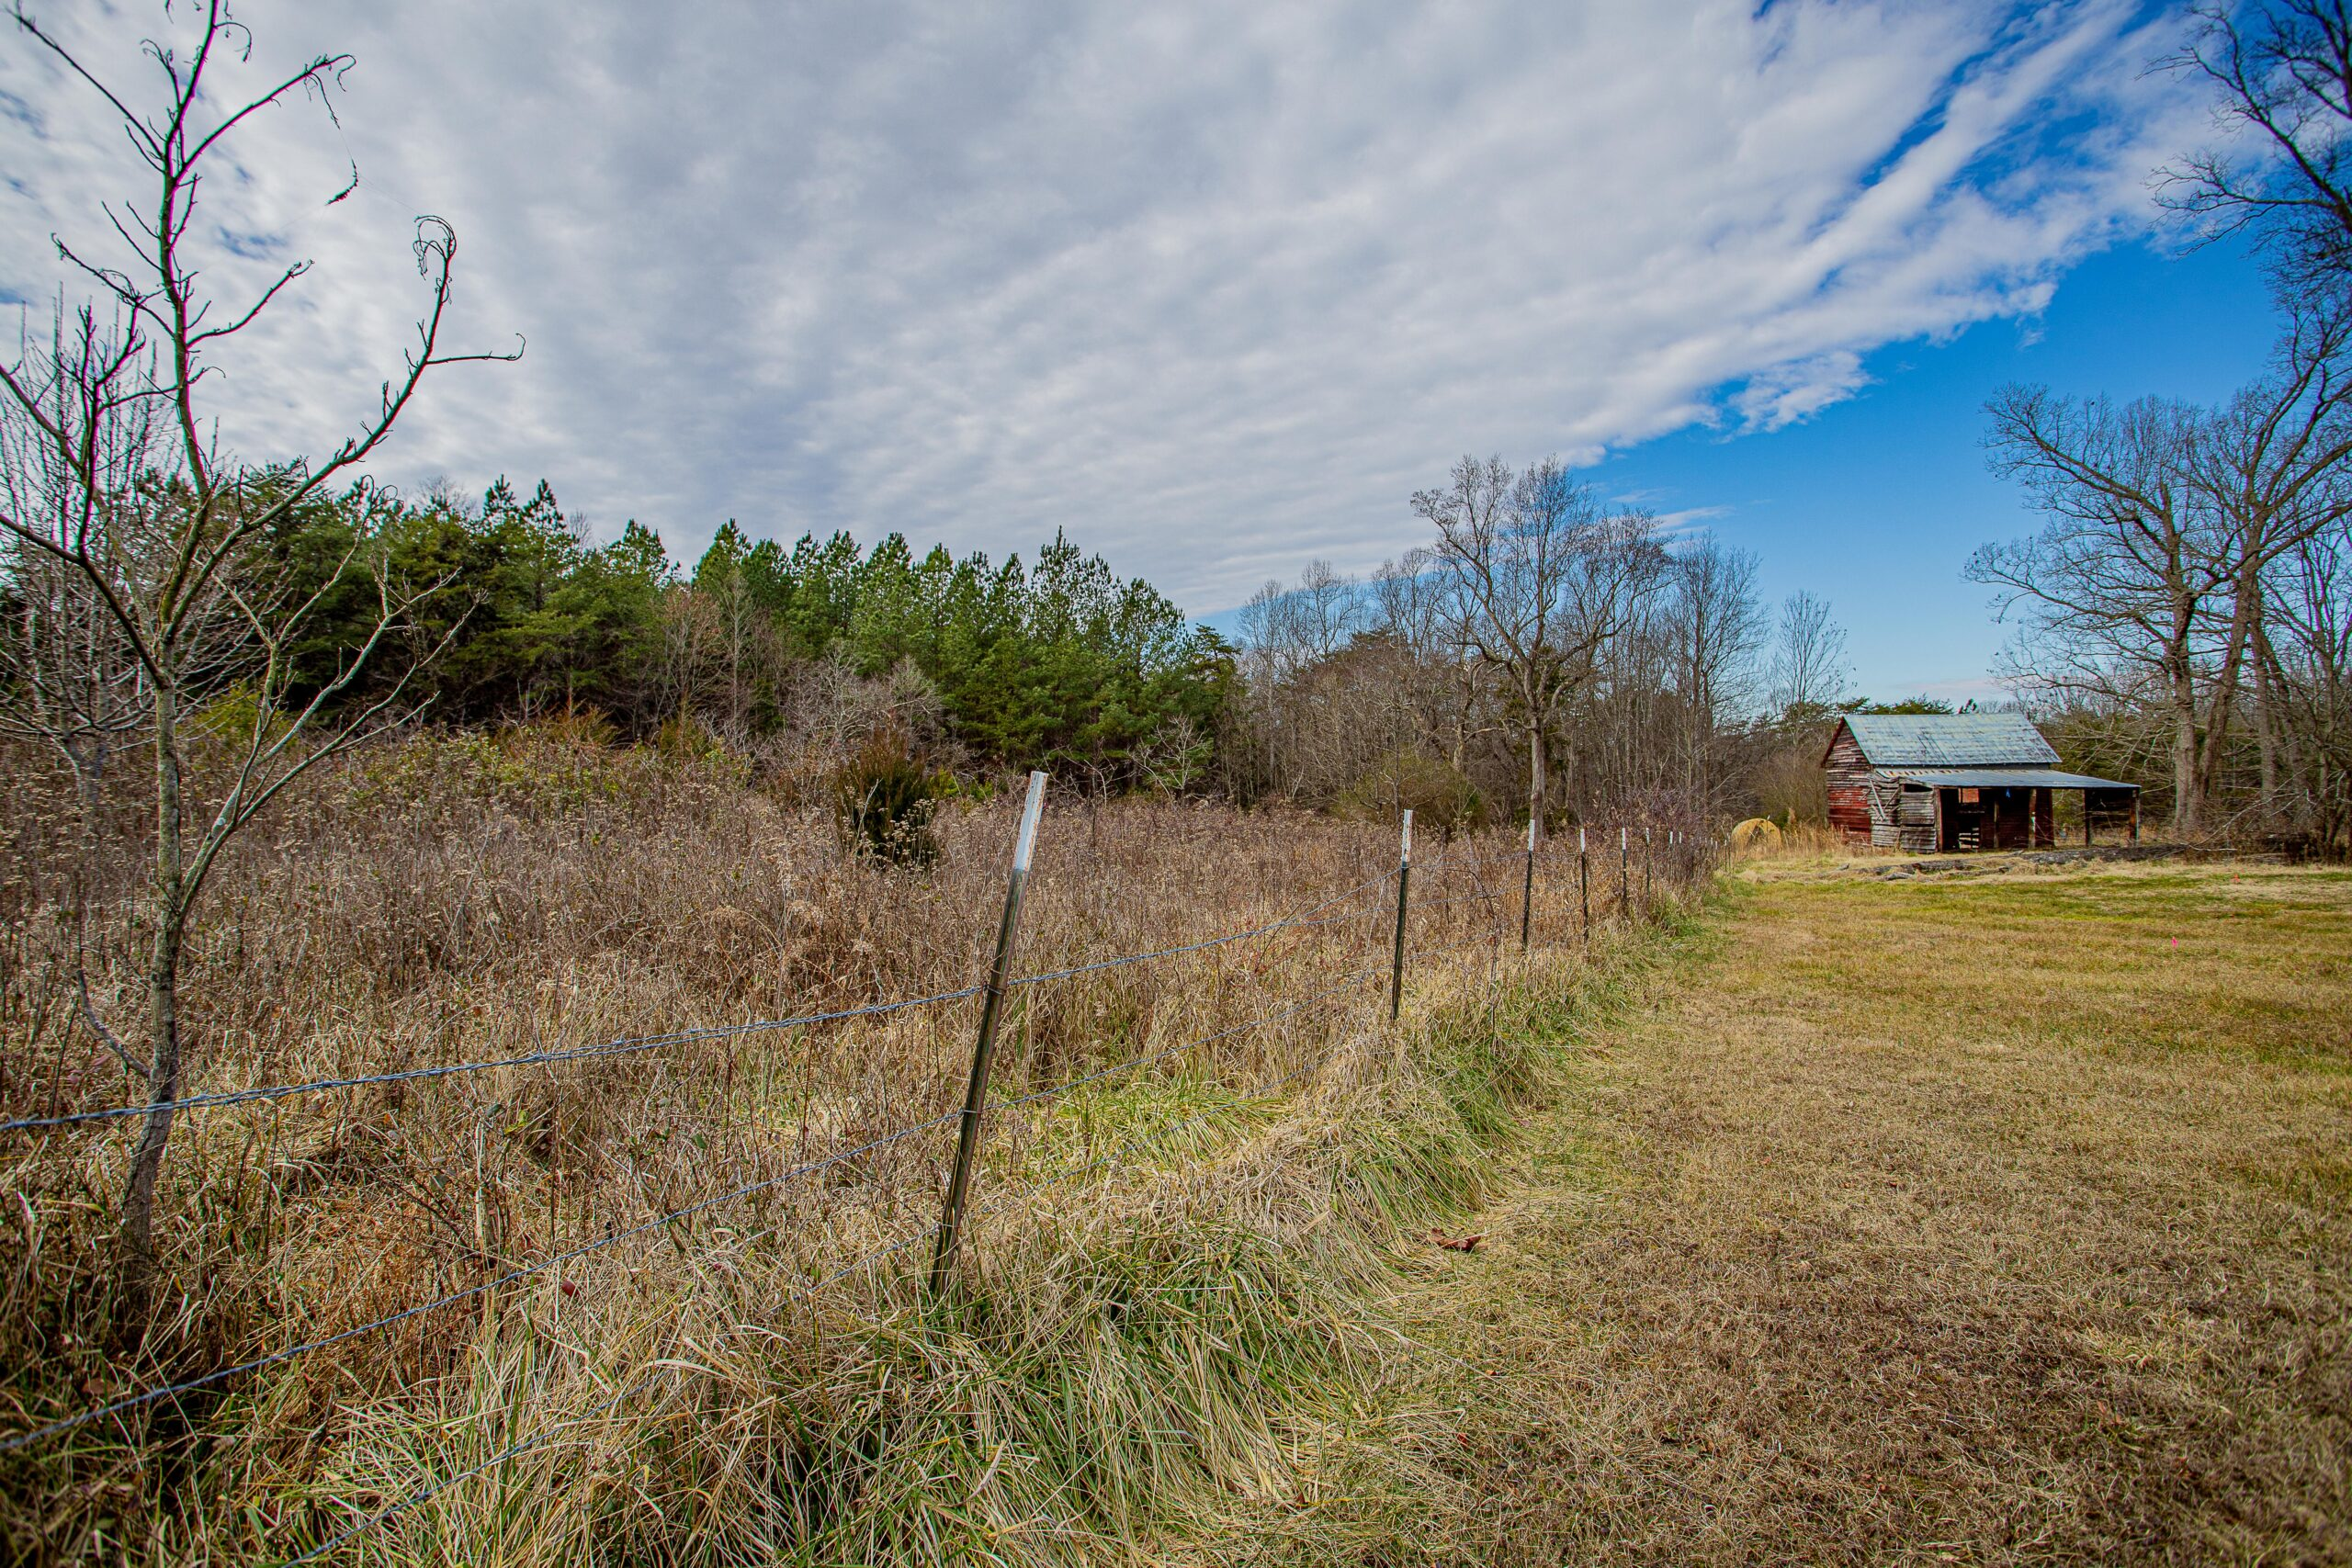 Wooded Lot with a Barn in Pittsylvania County